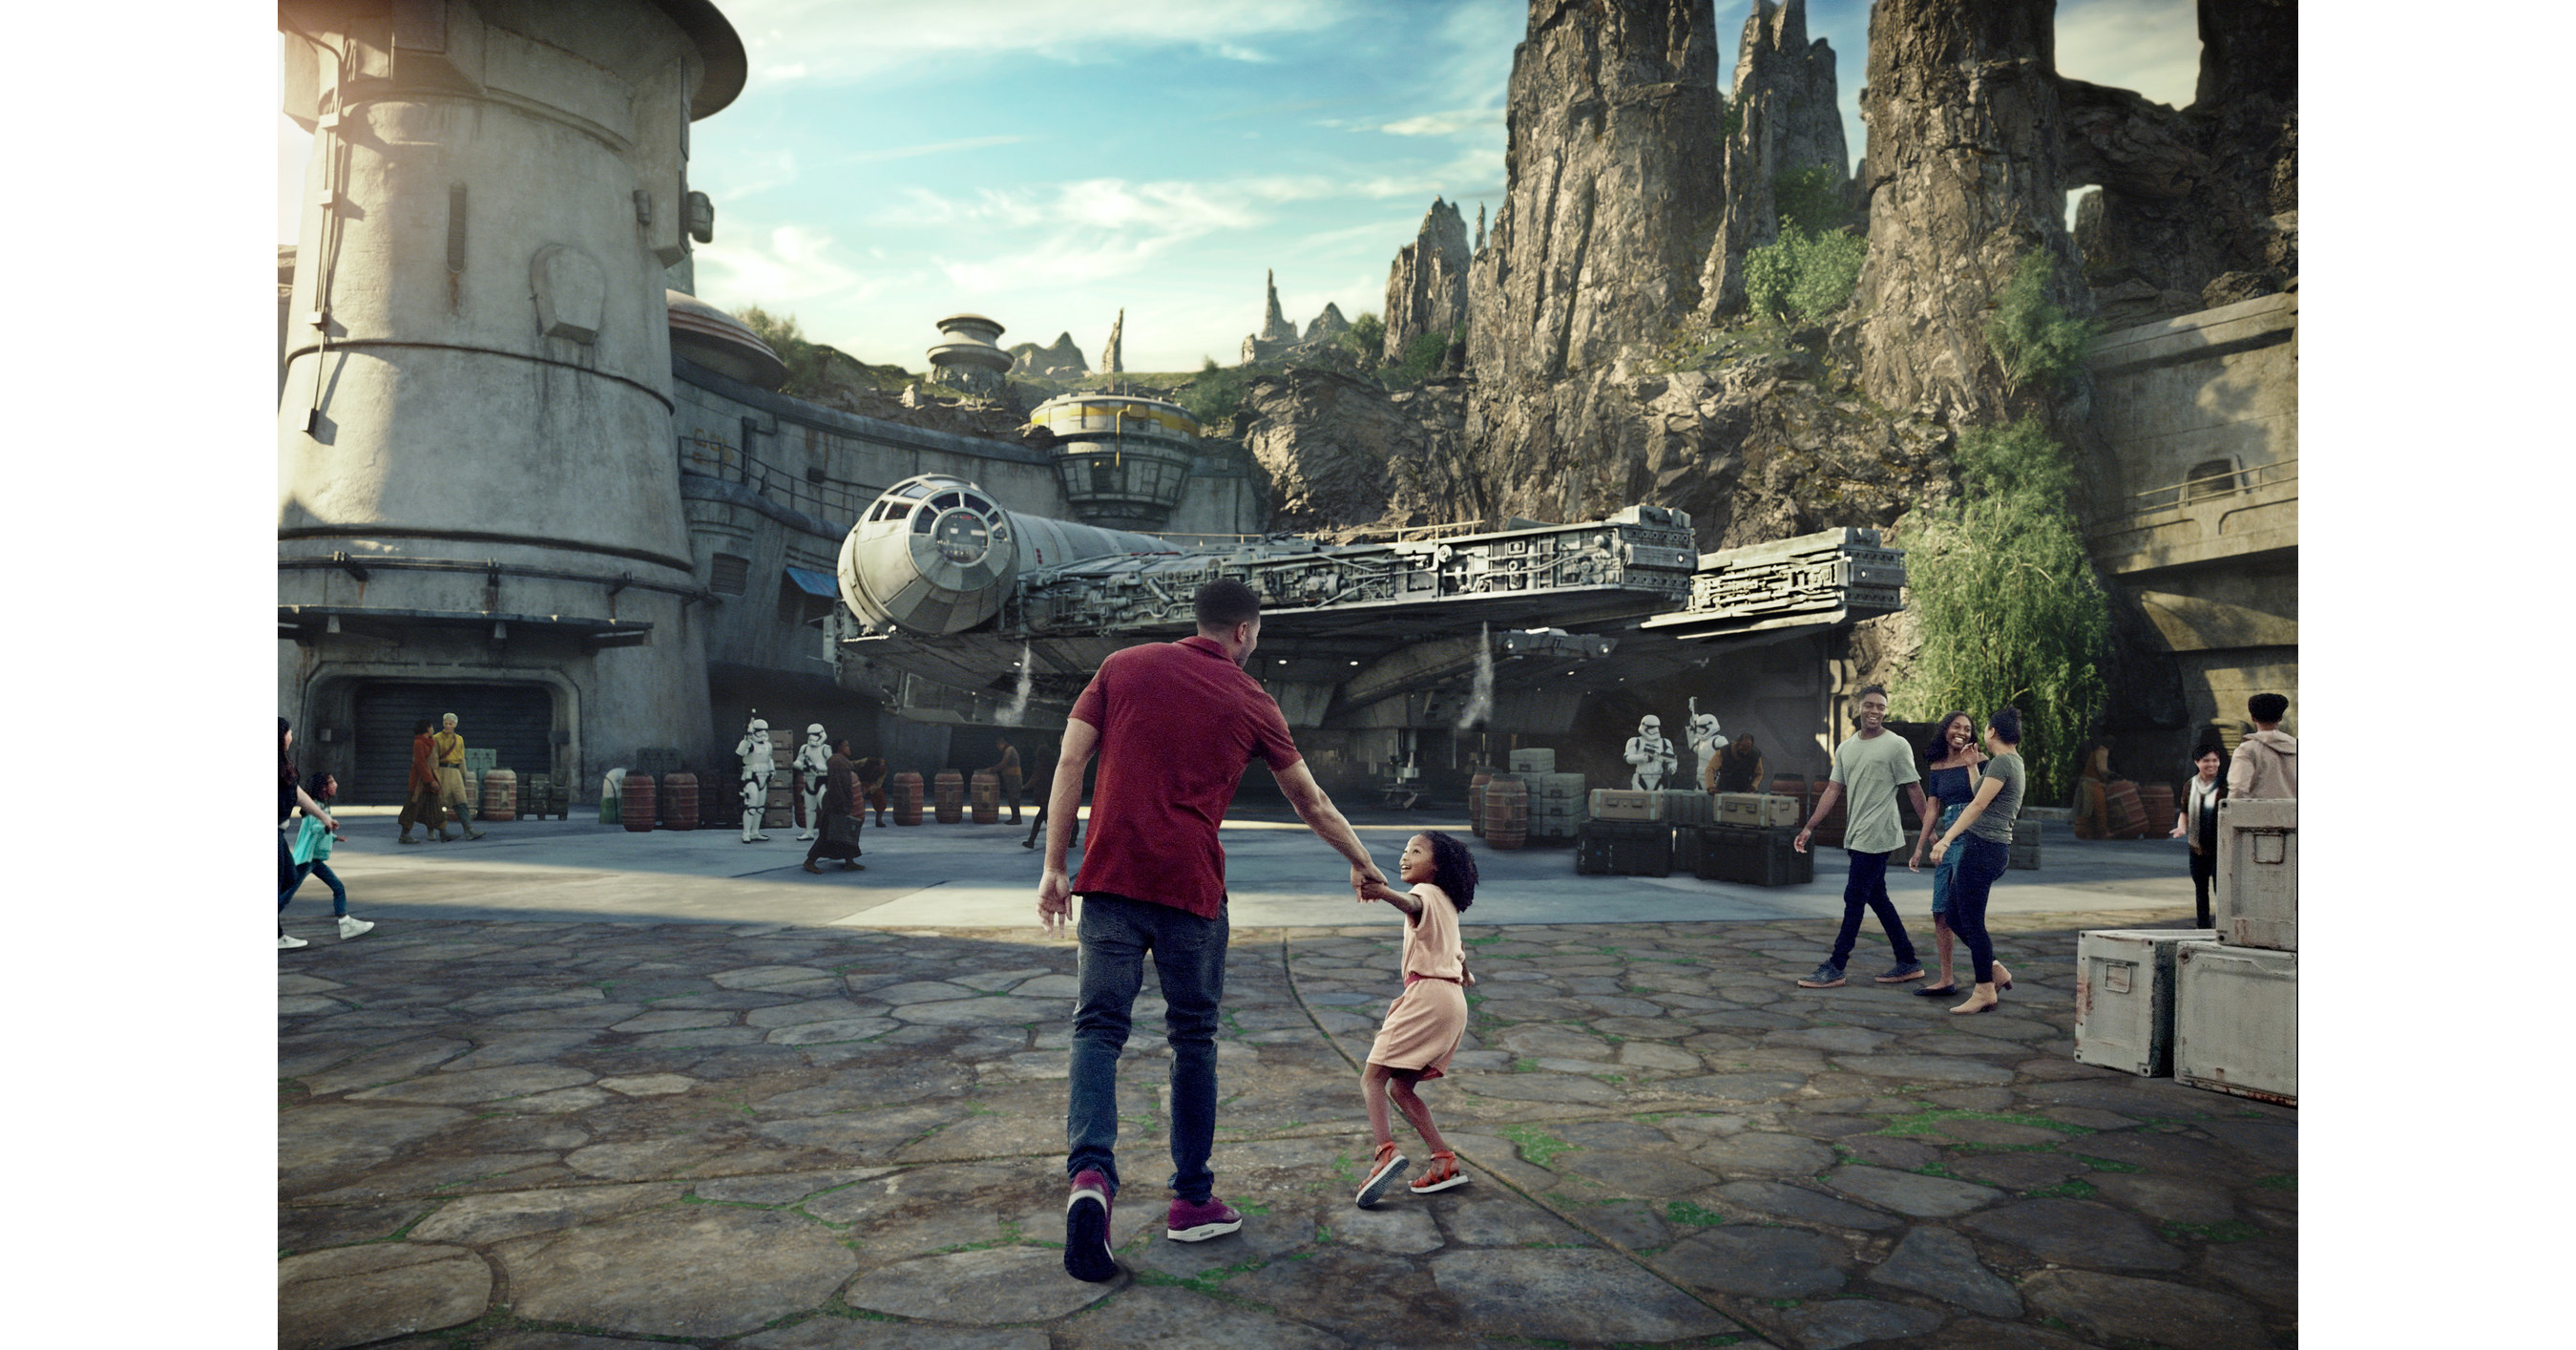 Star Wars: Galaxy's Edge Set to Open at Disneyland Resort on May 31